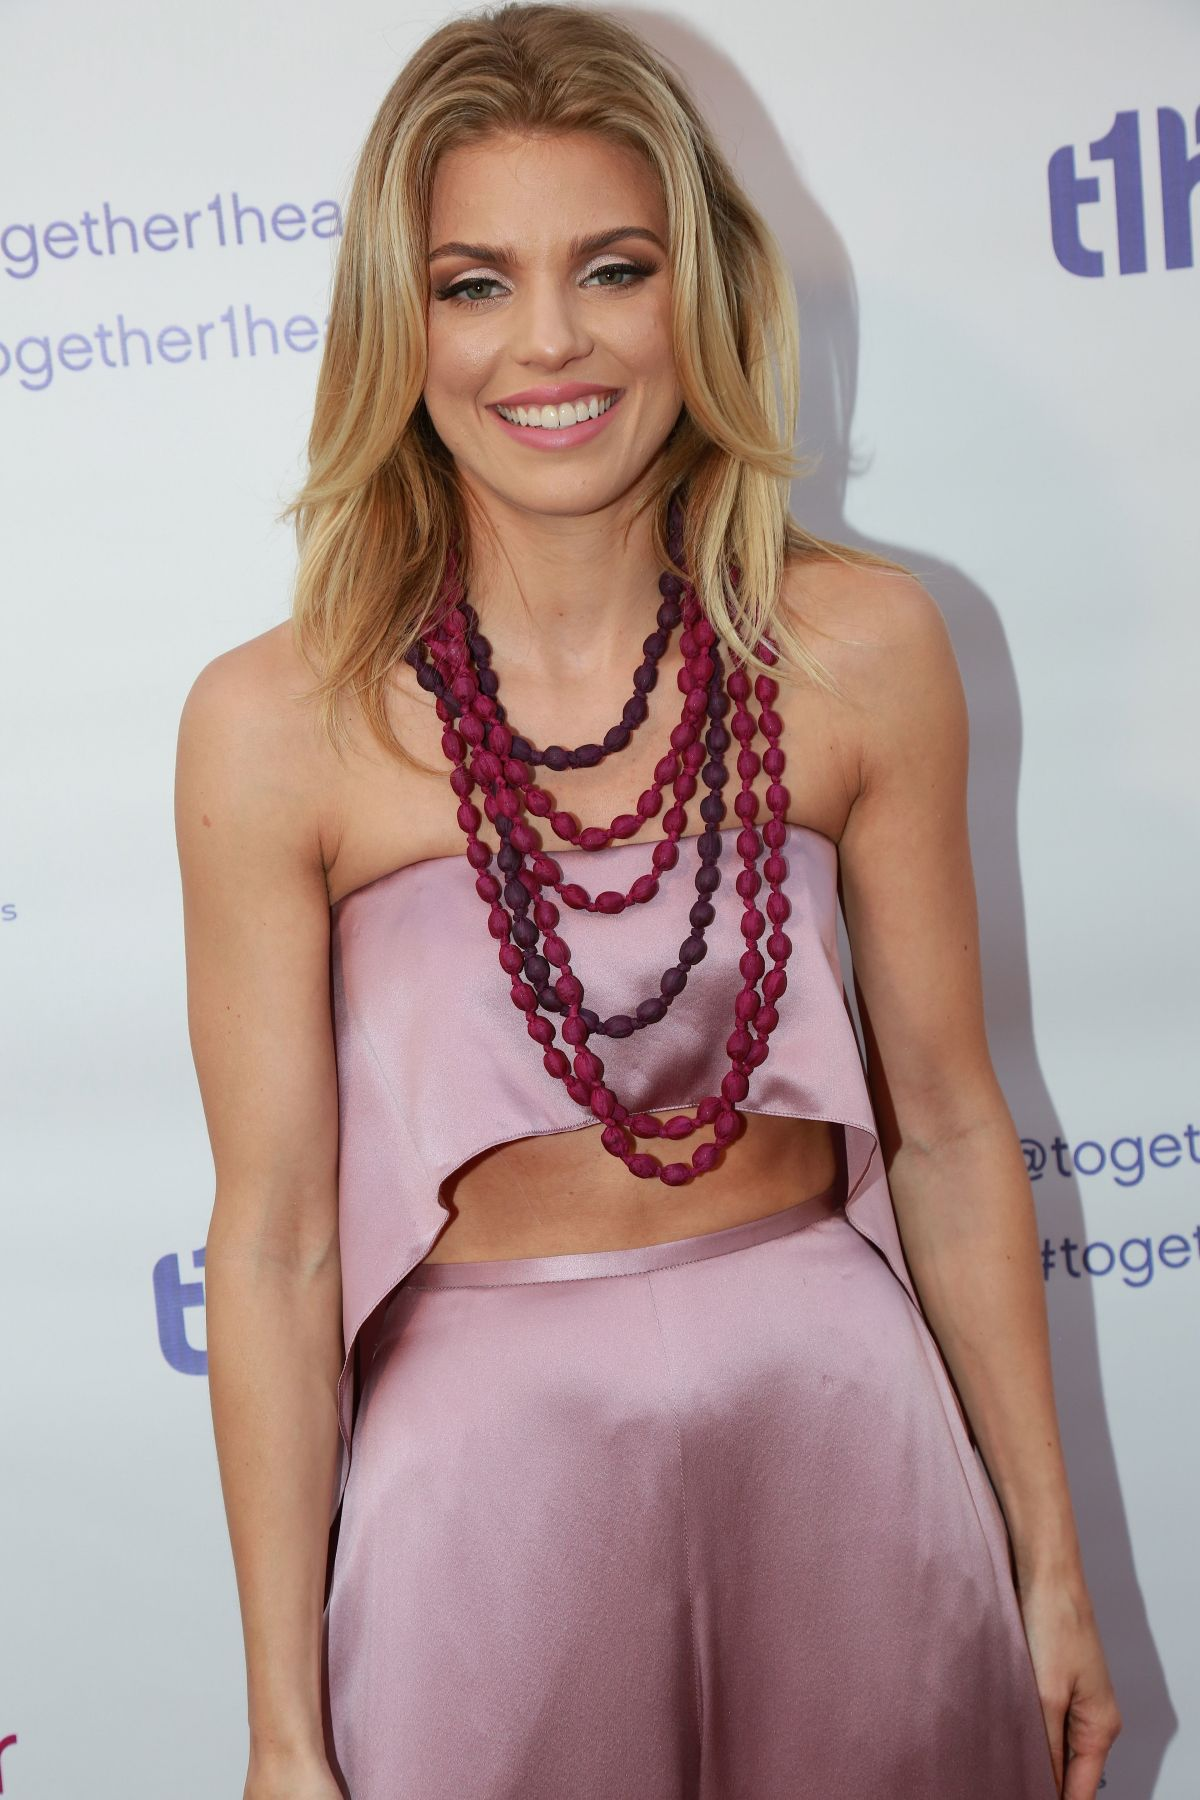 ANNALYNNE MCCORD at together1heart Launch in Beverly Hills 06/25/2016